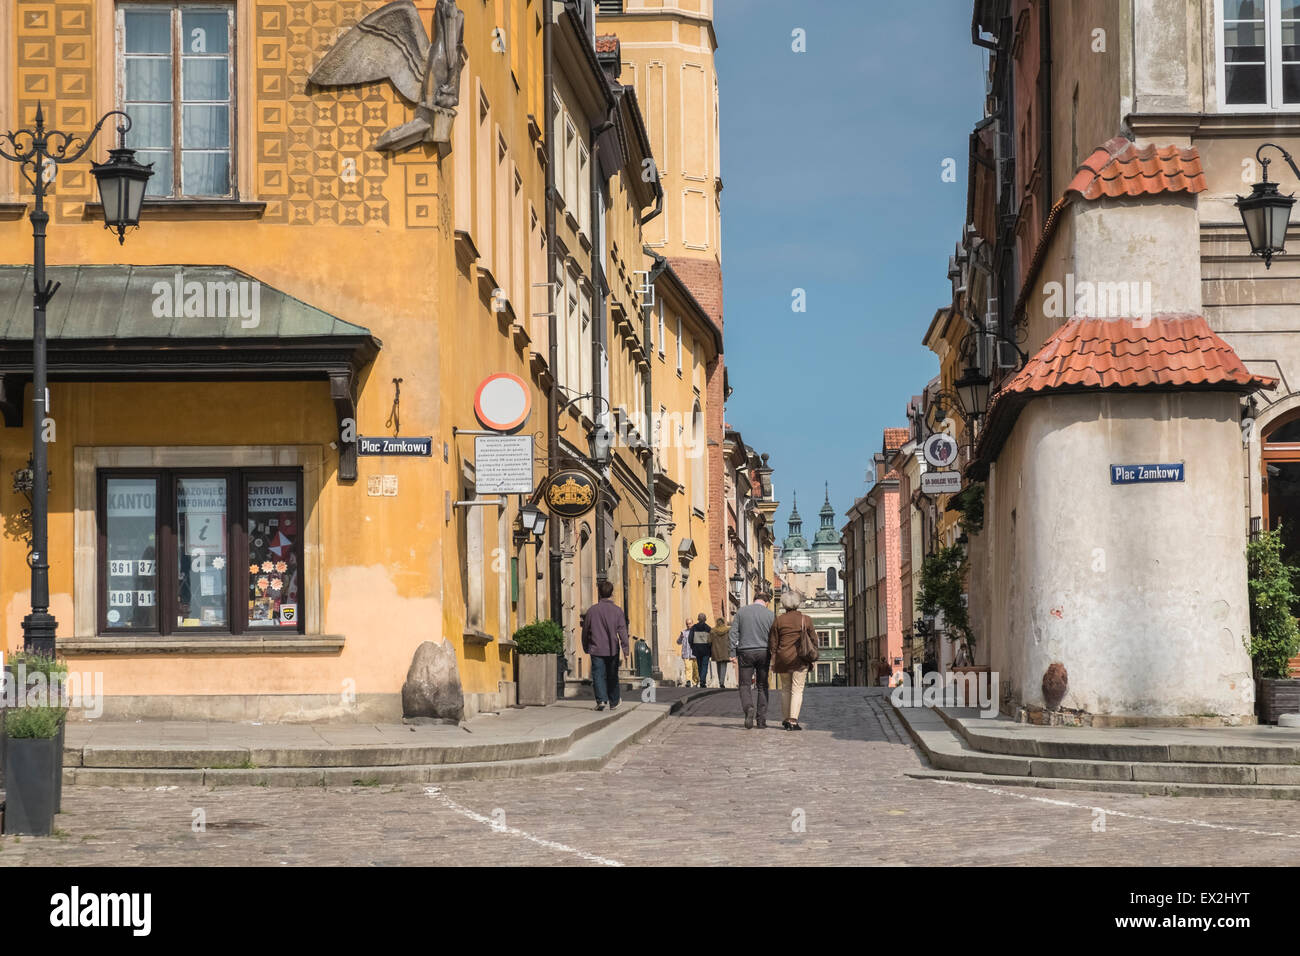 Example of architecture found in Old Town, Warsaw, a UNESCO World Heritage Site, Poland - Stock Image